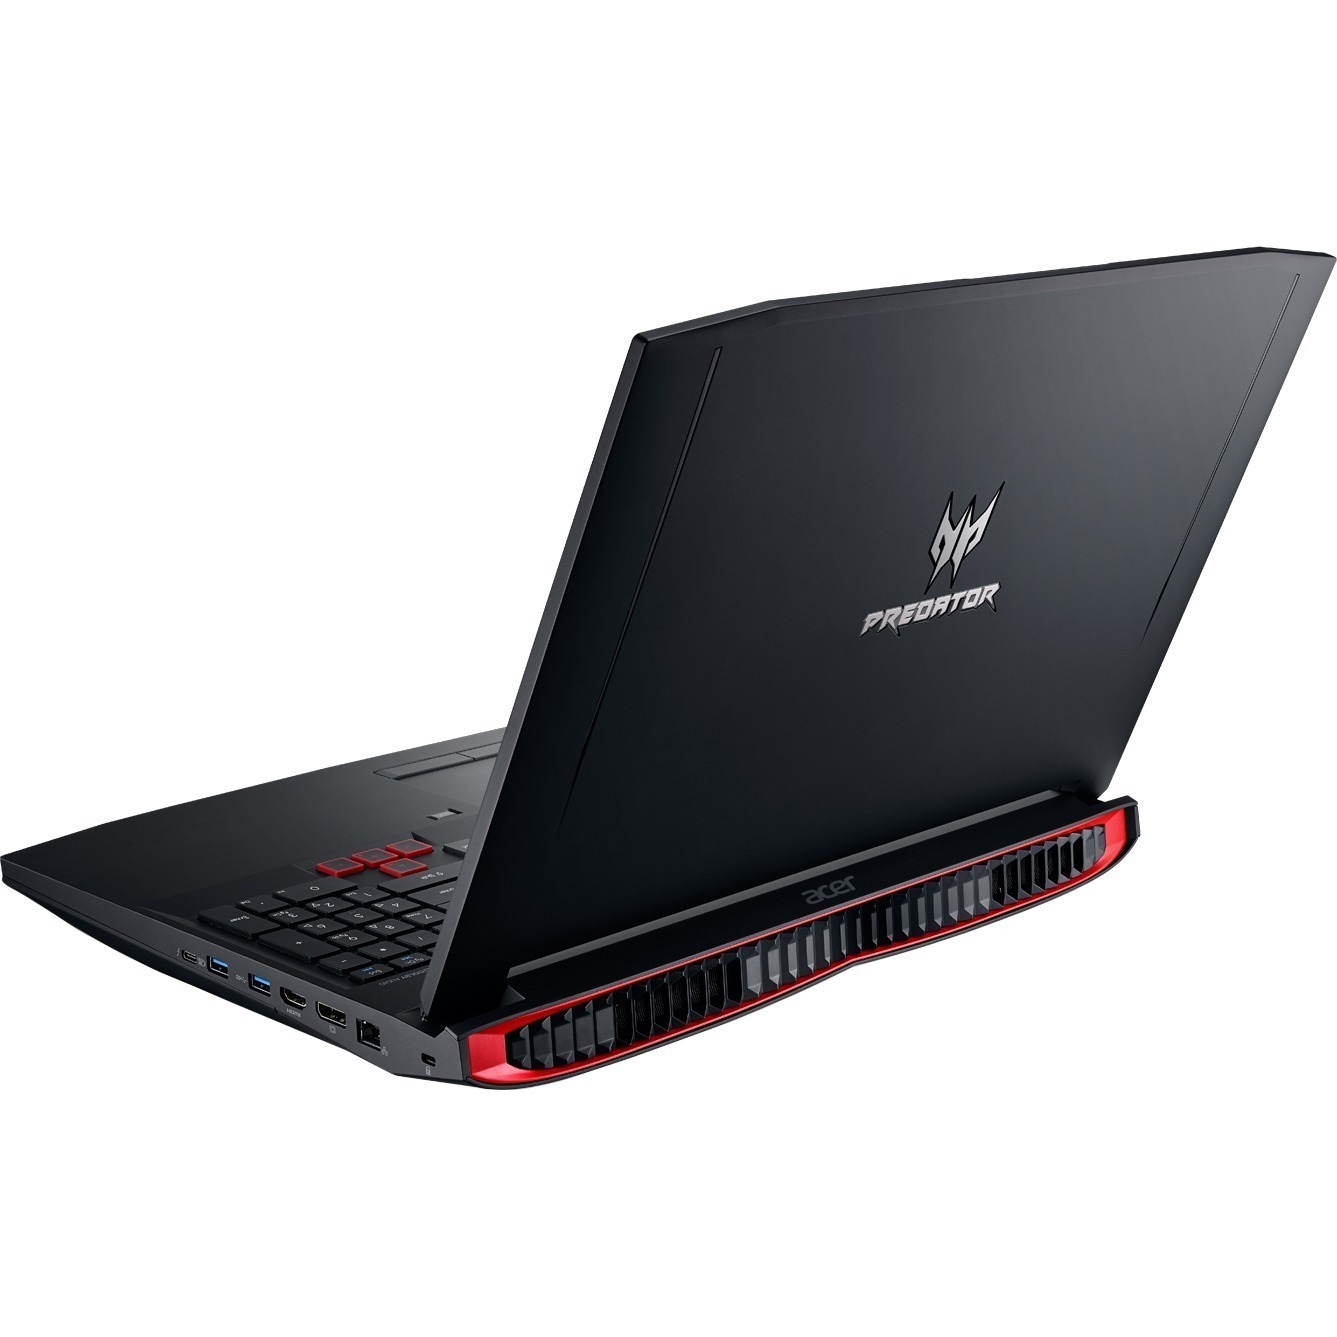 Acer Predator 17 G9-791-77VY 43.9 cm 17.3inch LED ComfyView Notebook